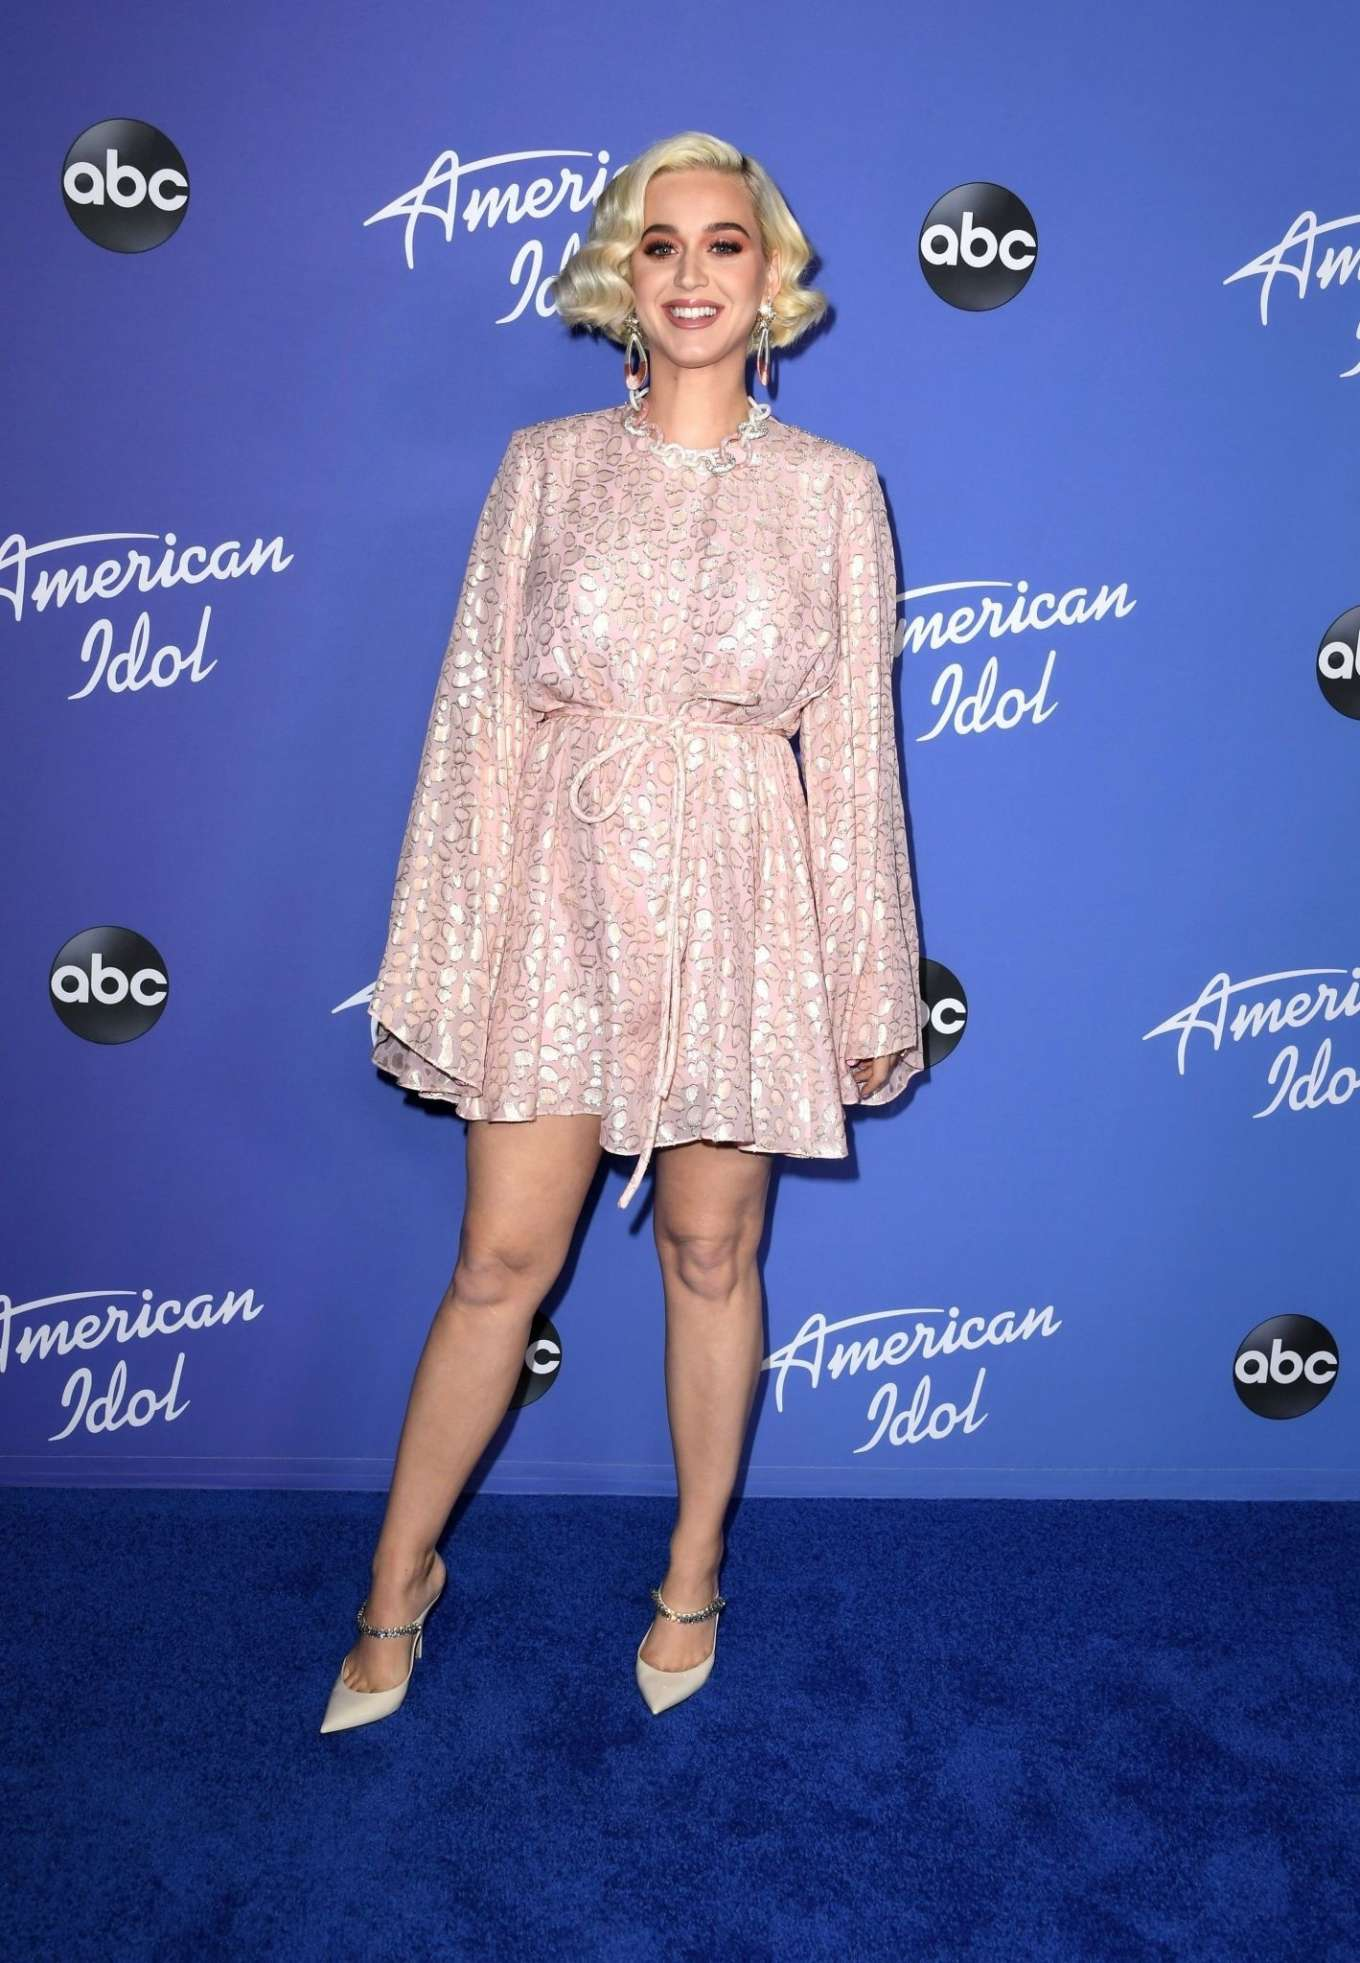 Katy Perry 2020 : Katy Perry – premiere event for new American Idol season in Hollywood-16